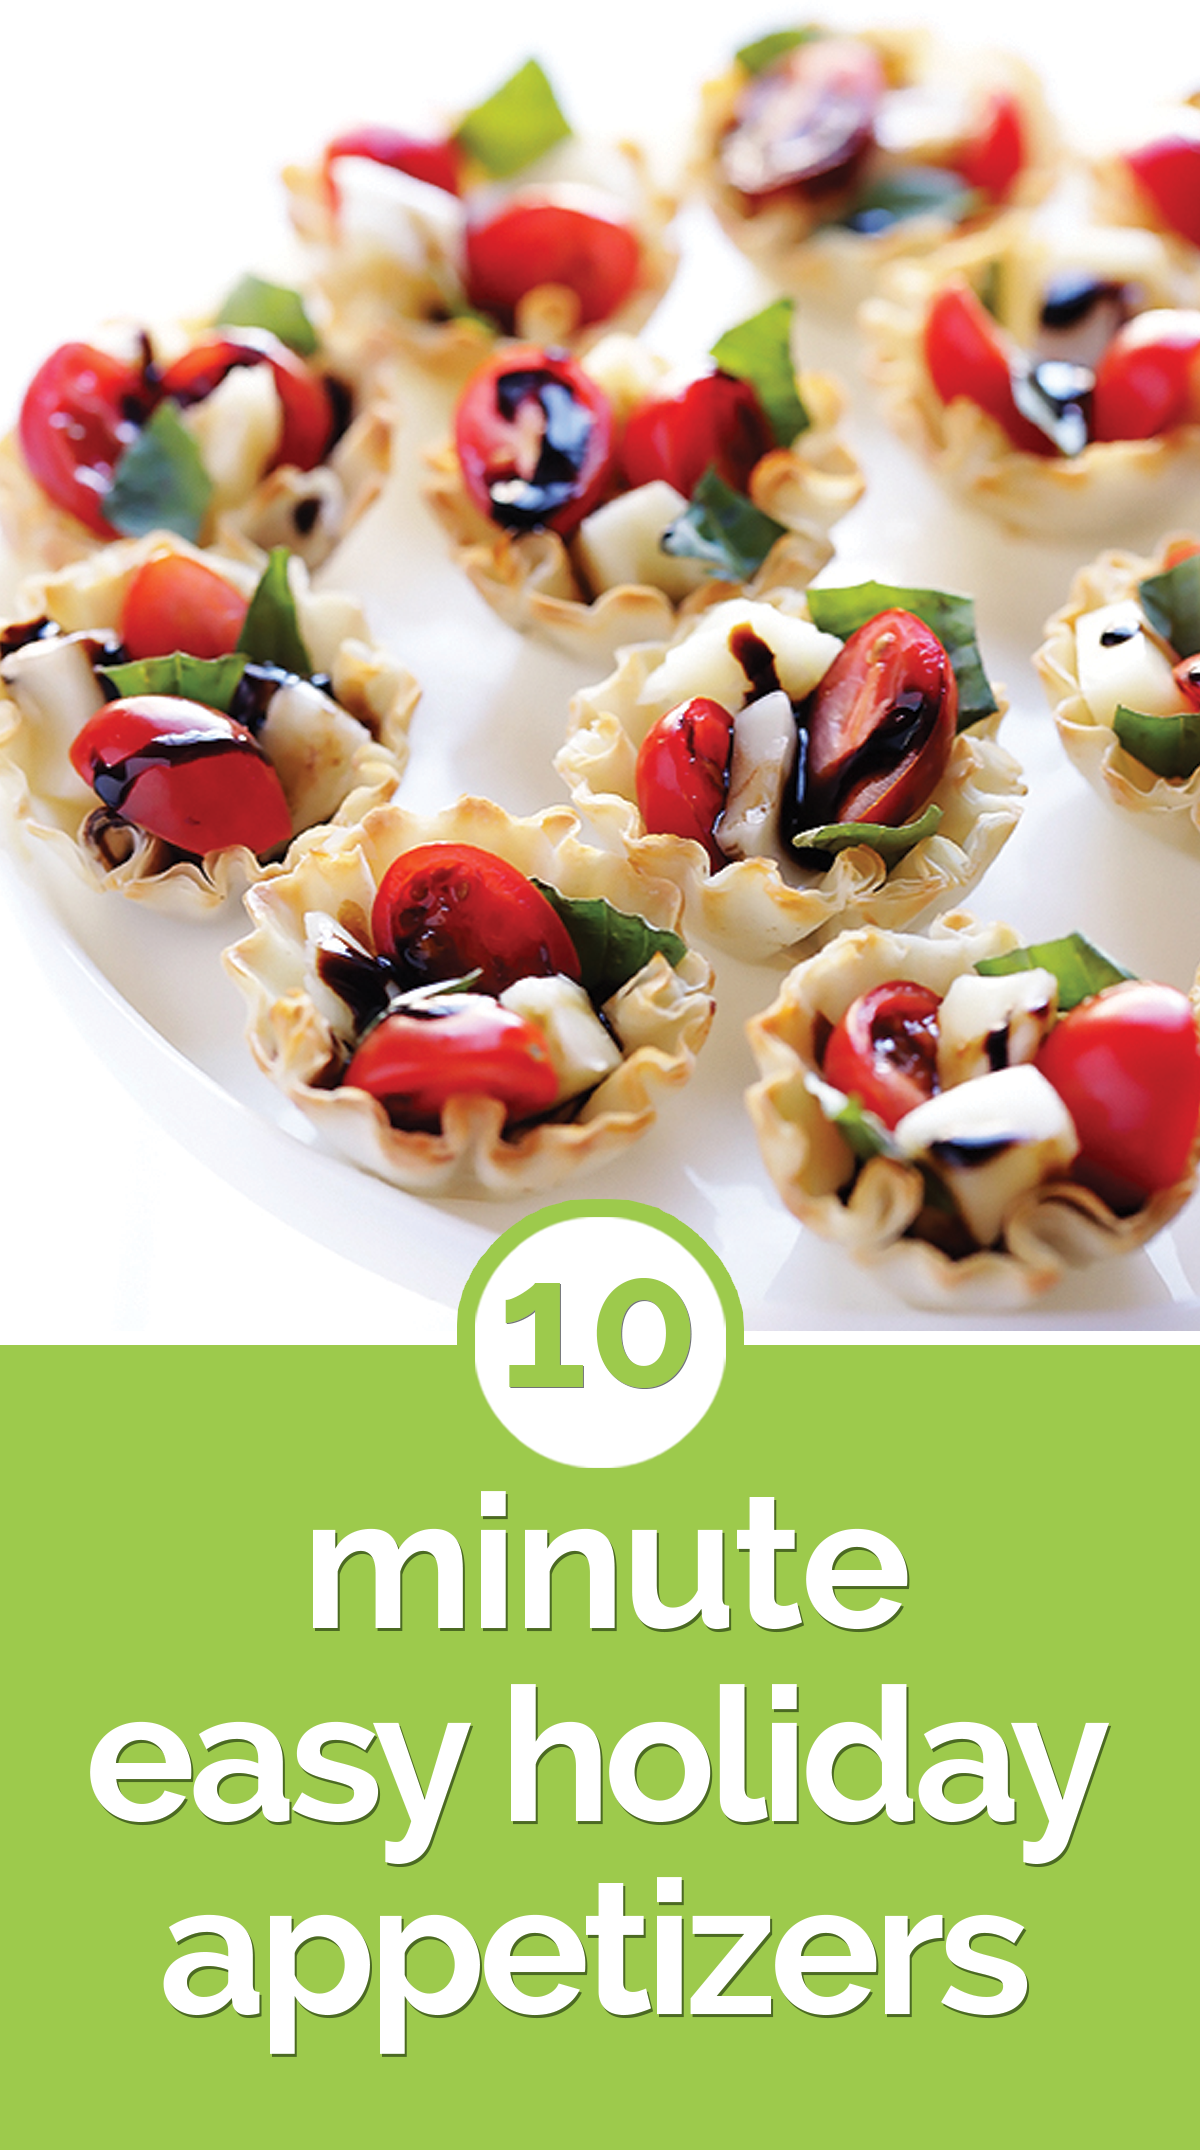 11 Easy Holiday Appetizers You Can Make in 10 Minutes - thegoodstuff